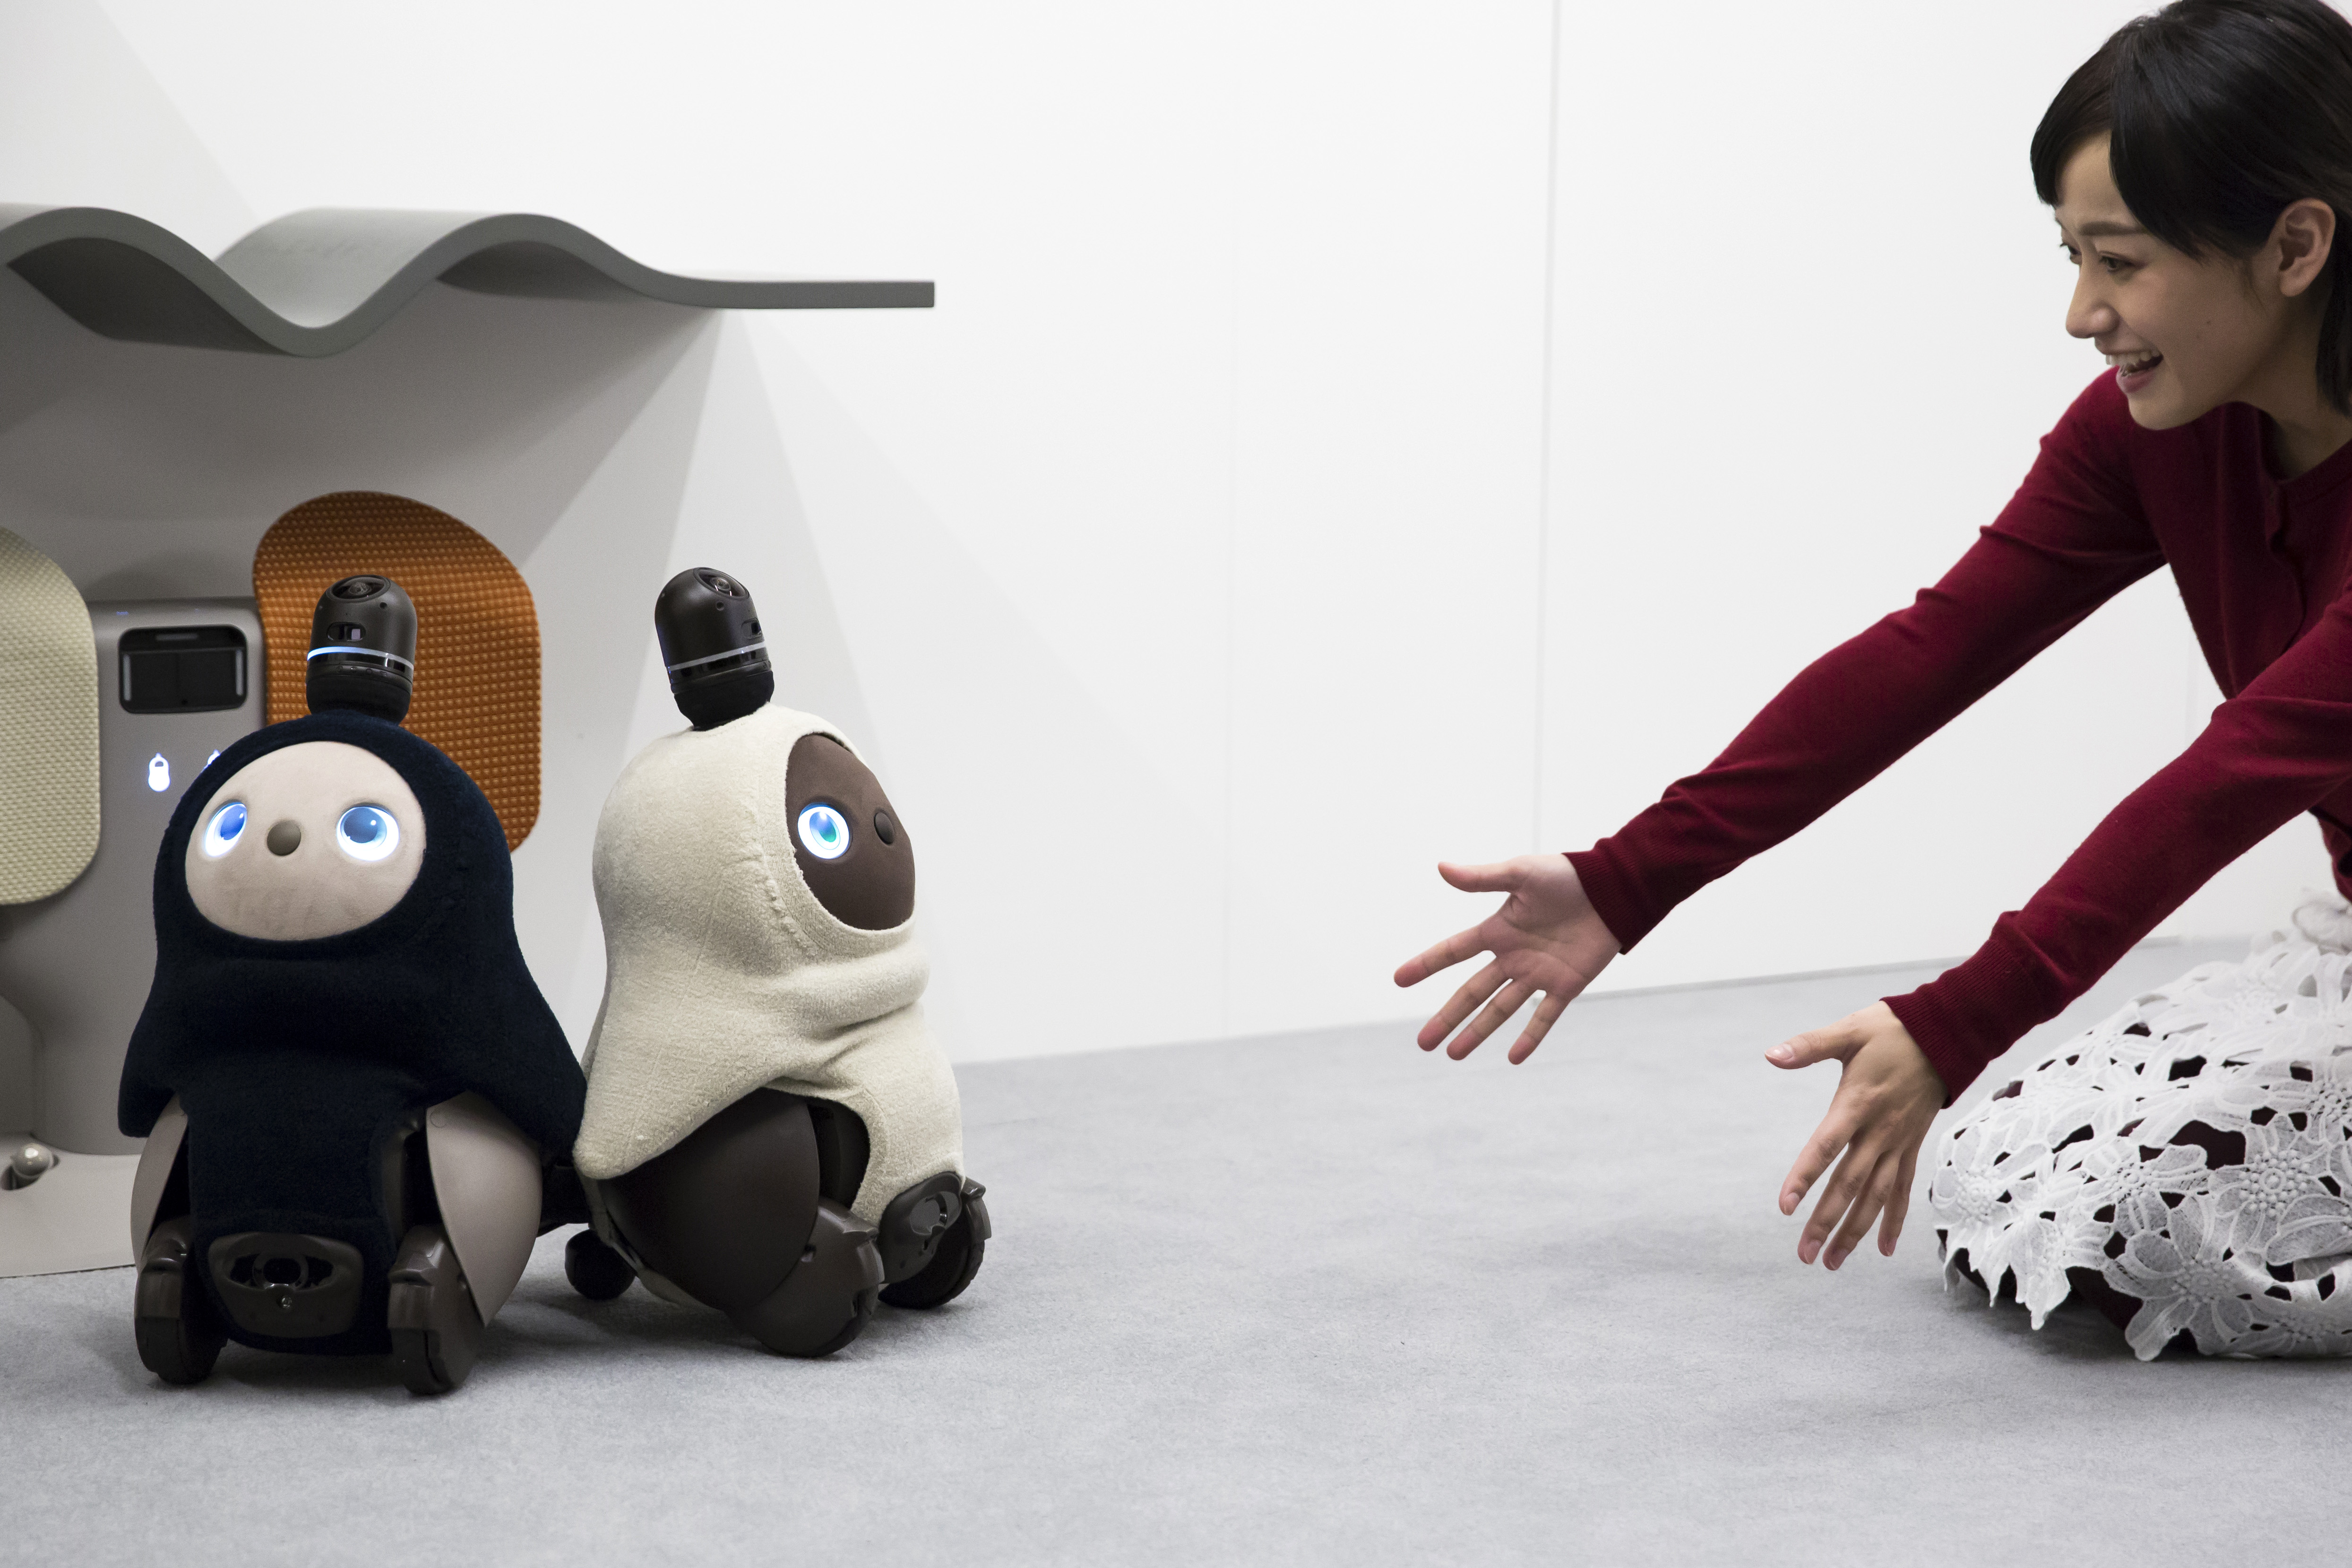 Japan's latest home robot isn't useful — it's designed to be